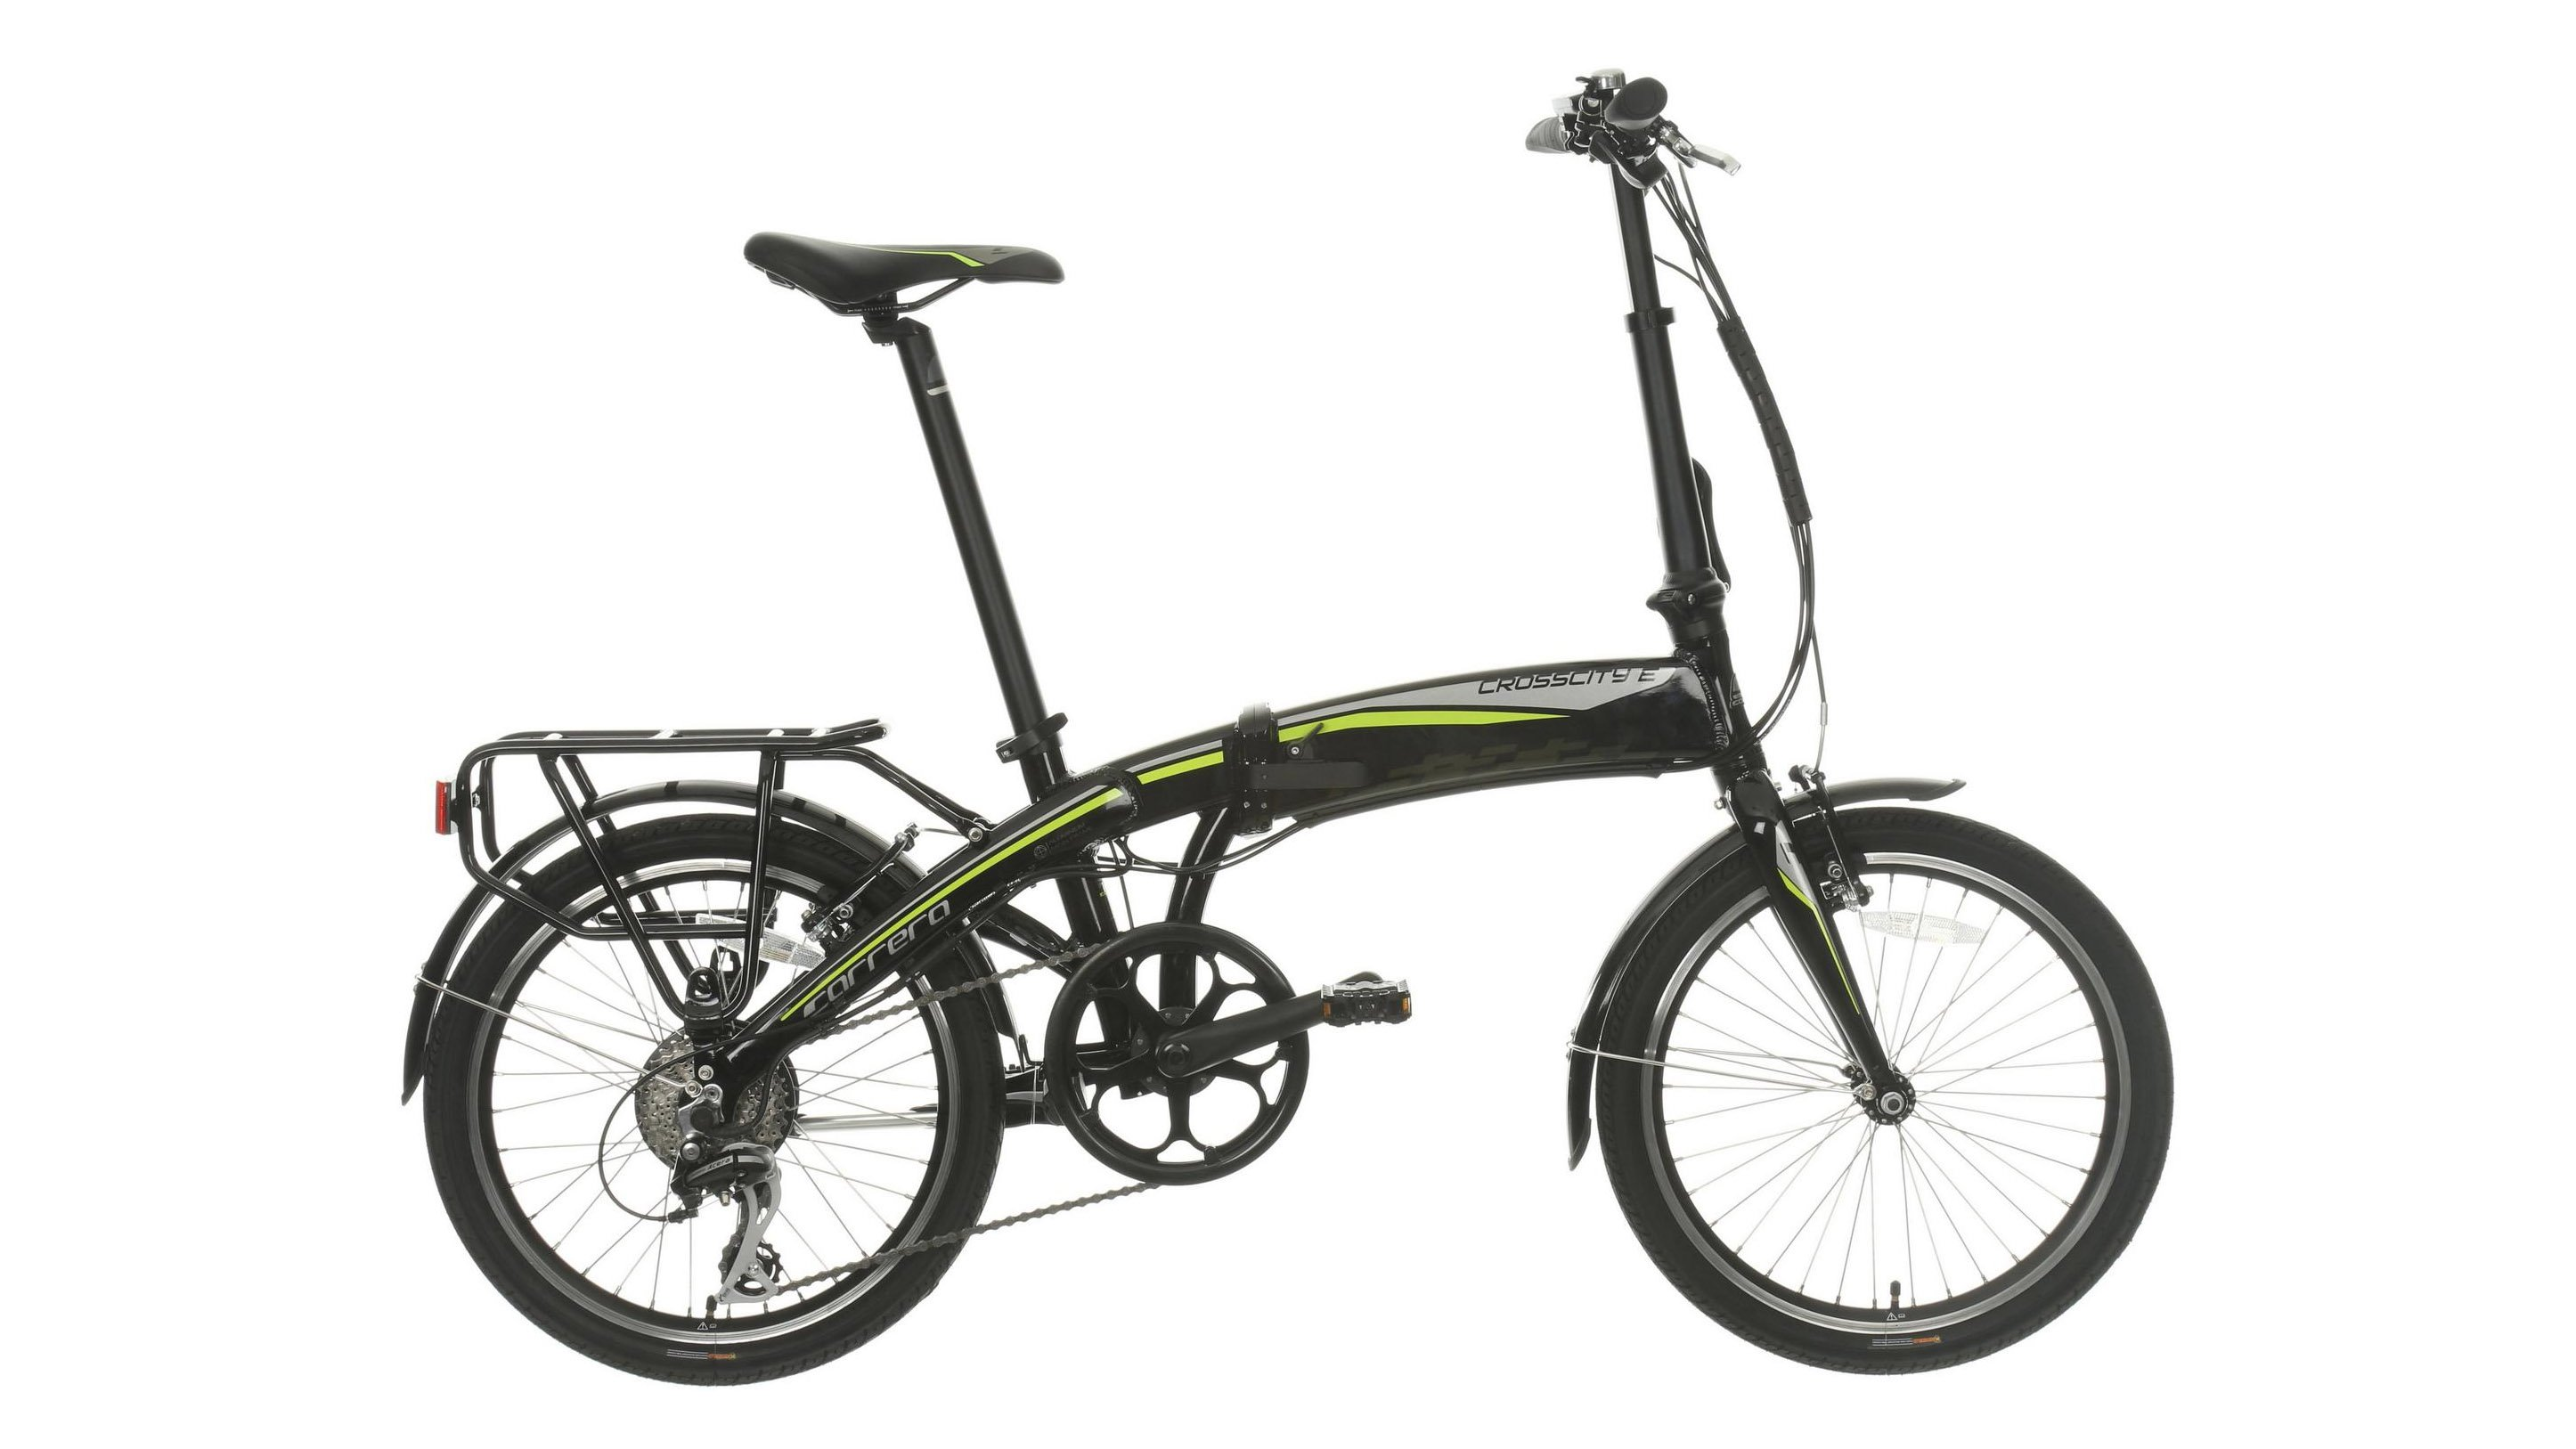 A Folding Electric Bike Is The Perfect Option For Commuters Whose Journey Mostly Spent On Public Transport But Who Need Sdy Method Of